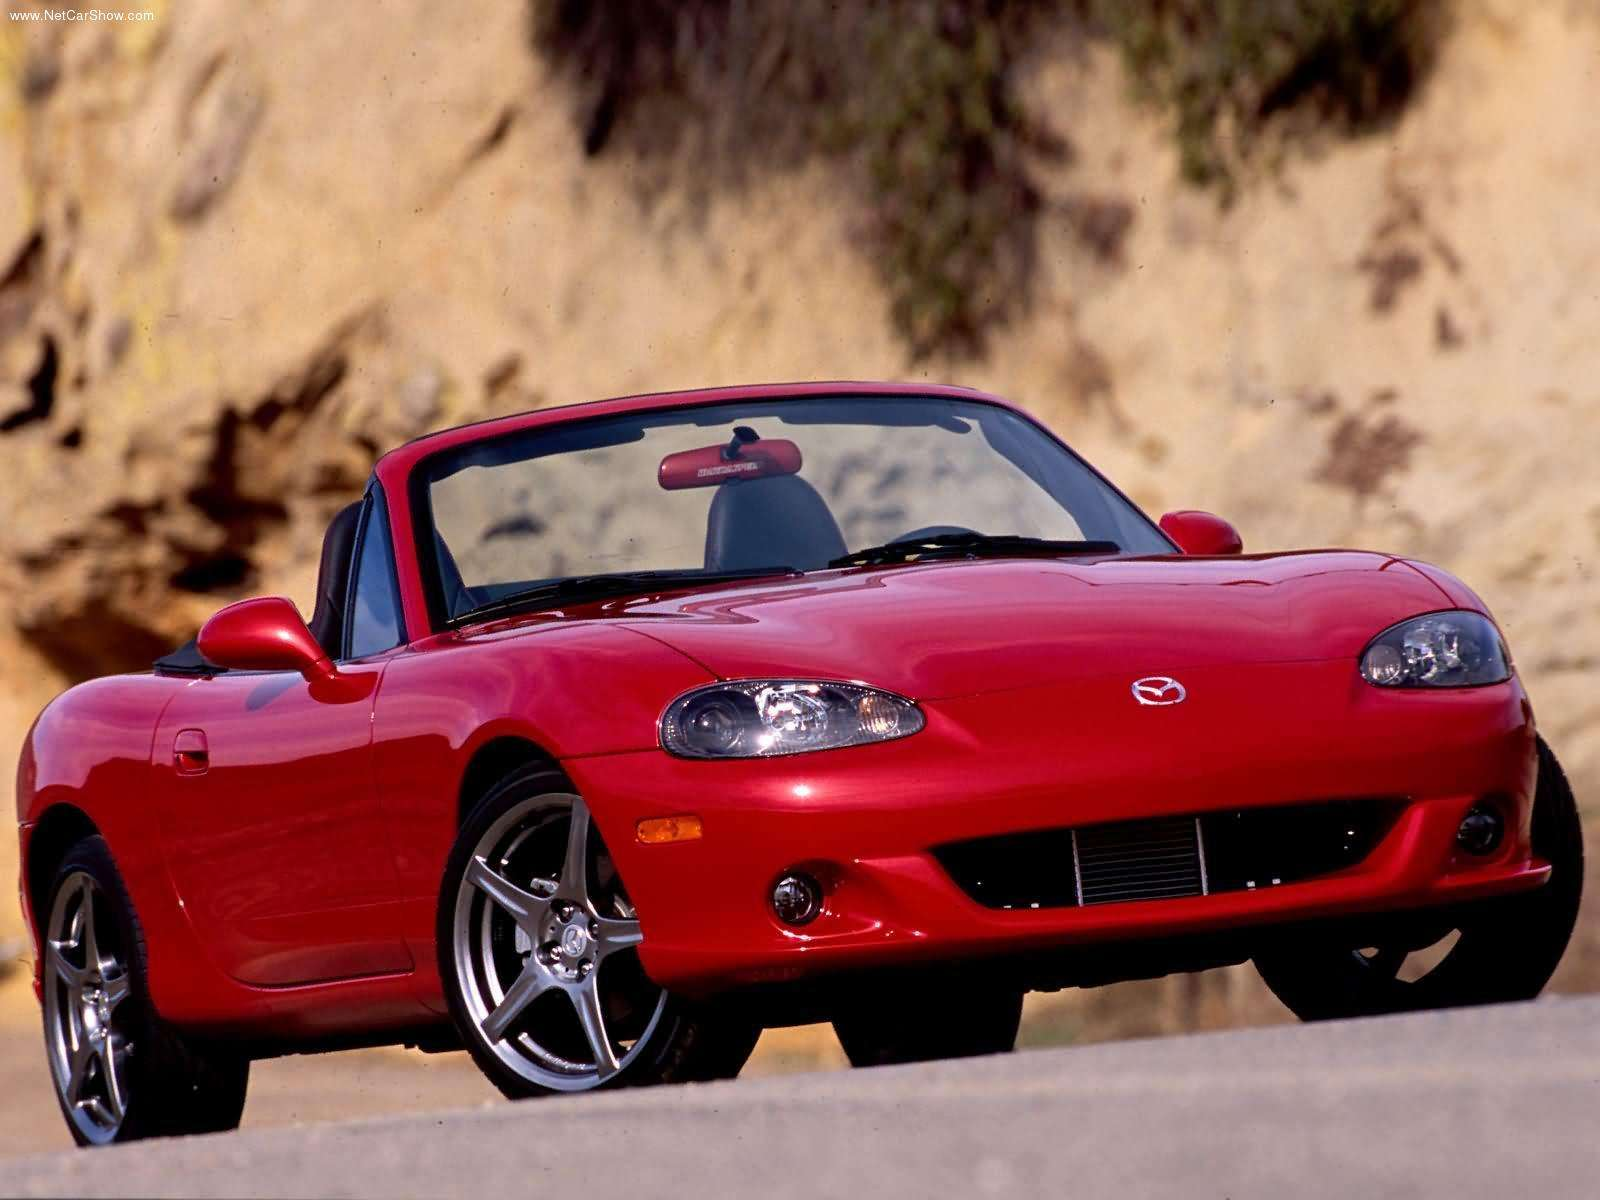 Picture of 2004 Mazda MAZDASPEED MX-5 Miata